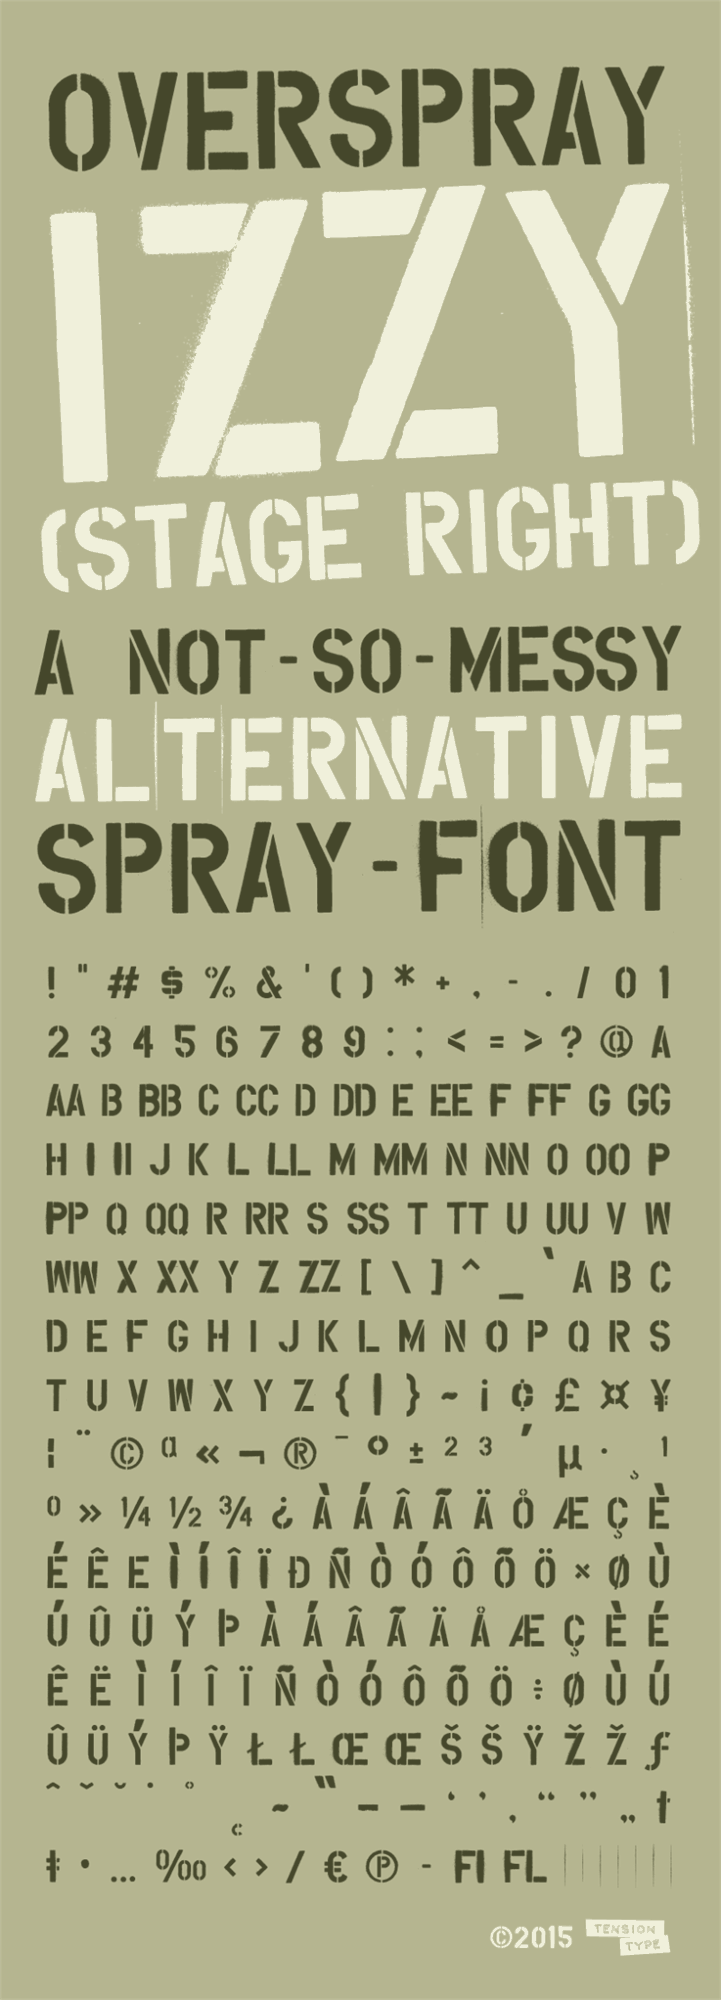 Overspray font by Tension Type